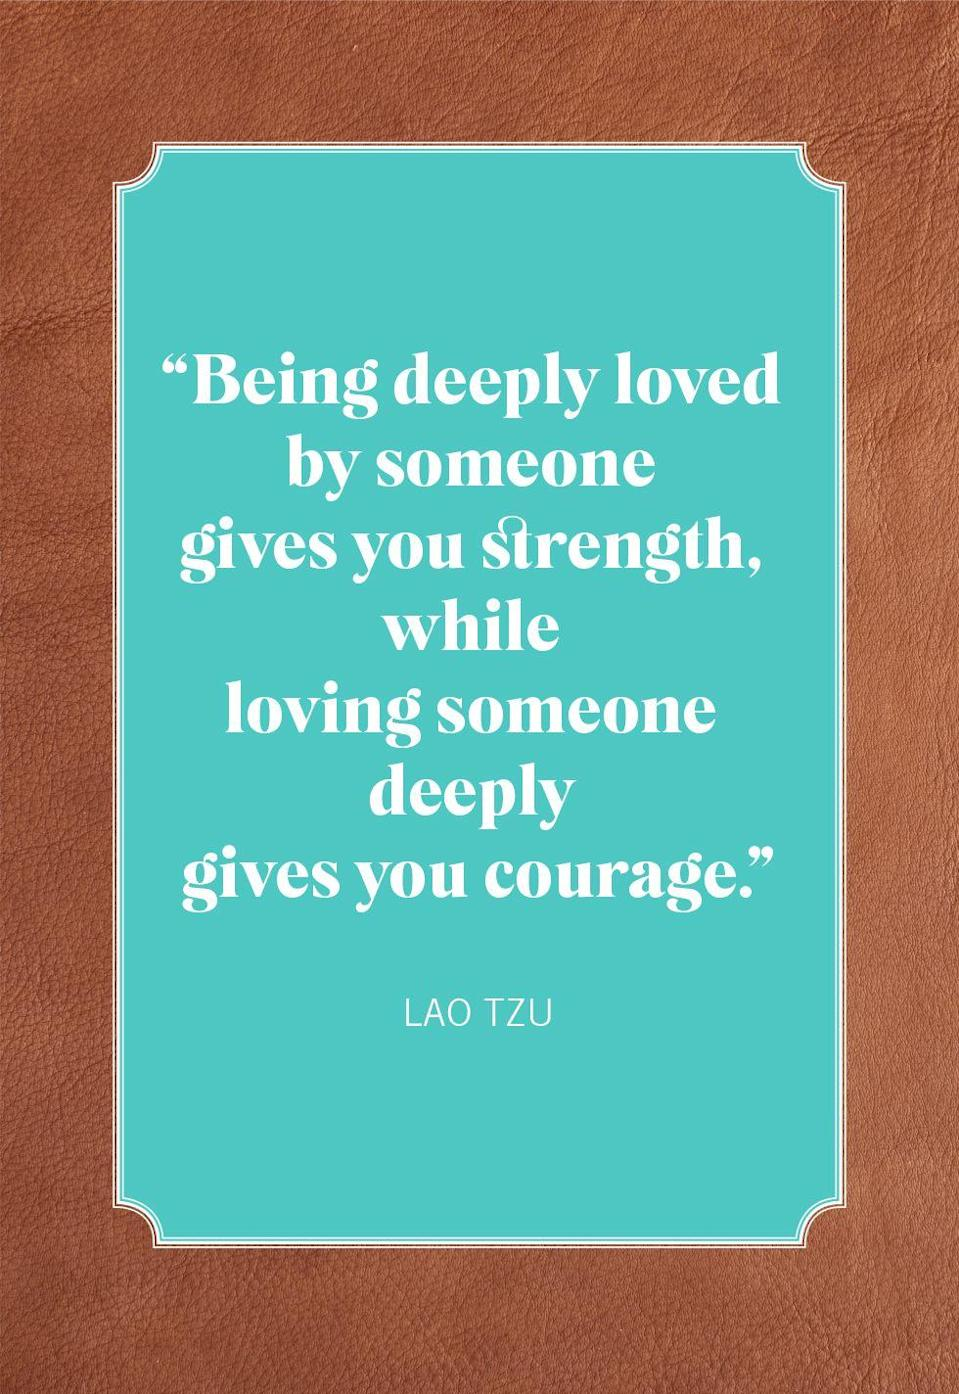 "<p>""Being deeply loved by someone gives you strength, while loving someone deeply gives you courage.""</p>"